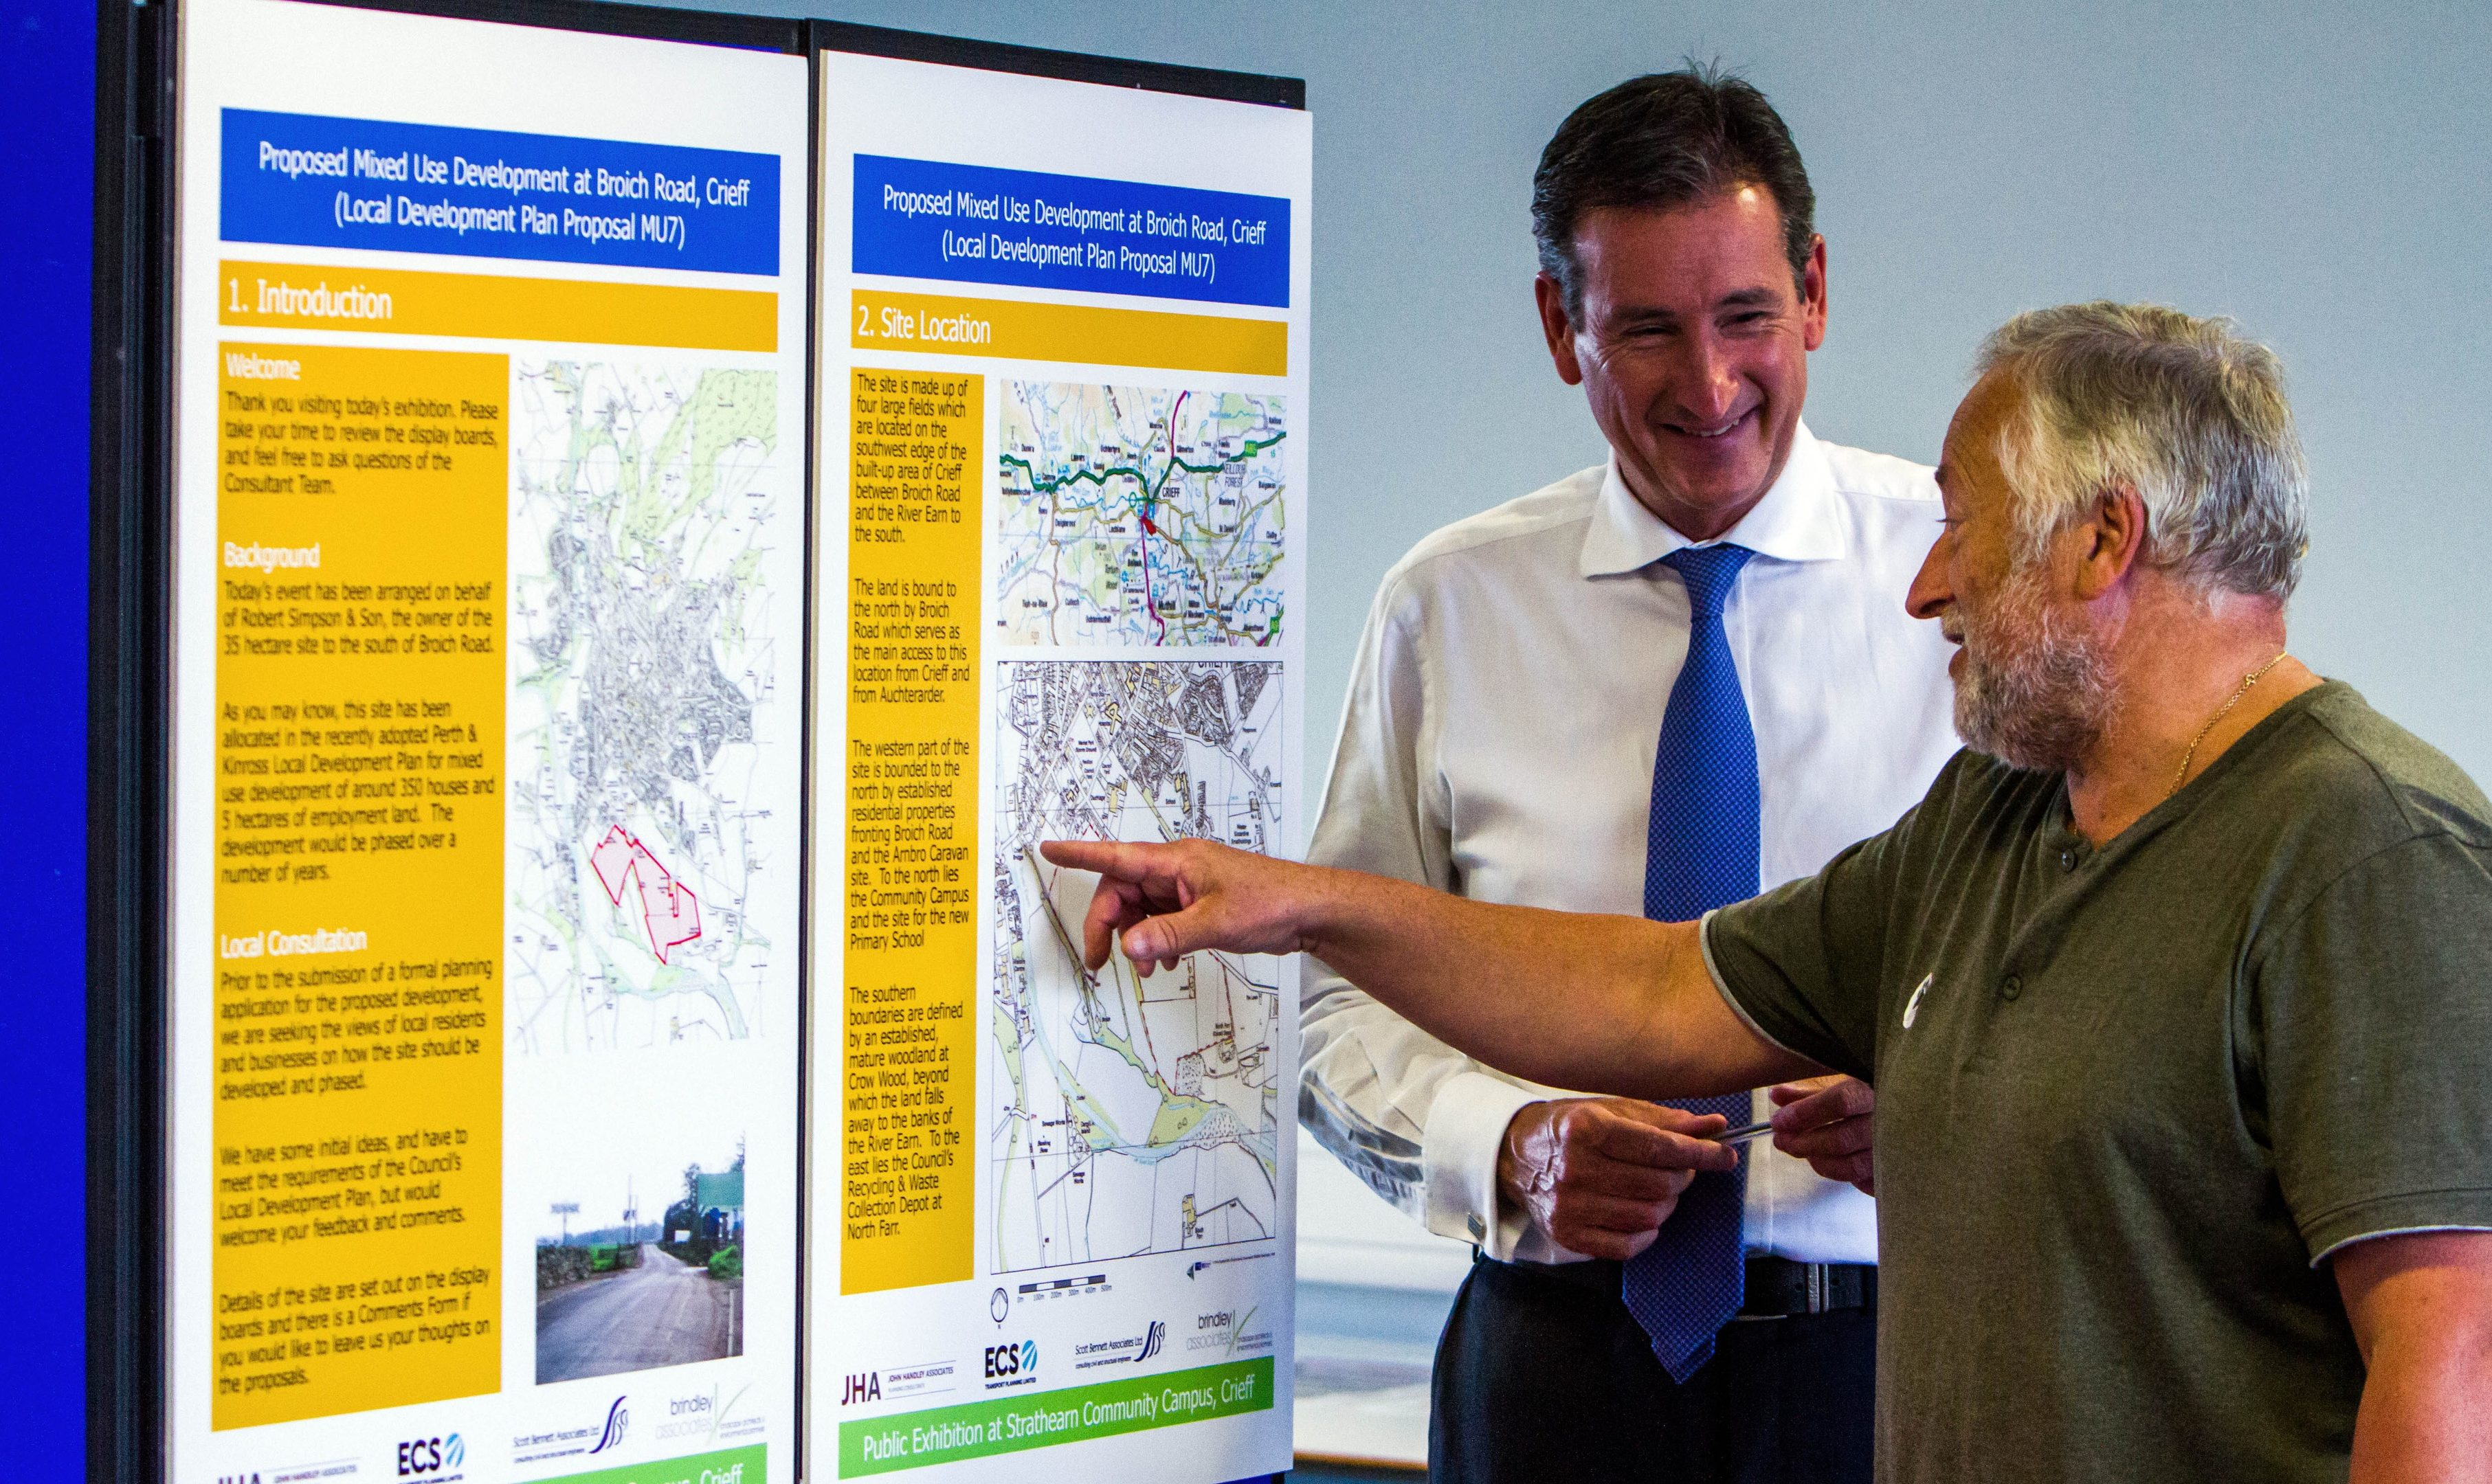 Public exhibition on proposals for the Broich Road development at Crieff. Pictured, Kim Marshall (right, from Crieff) chats to Alston Birnie (left, planning consultant for landowner Robert Simpson and Sons Ltd).